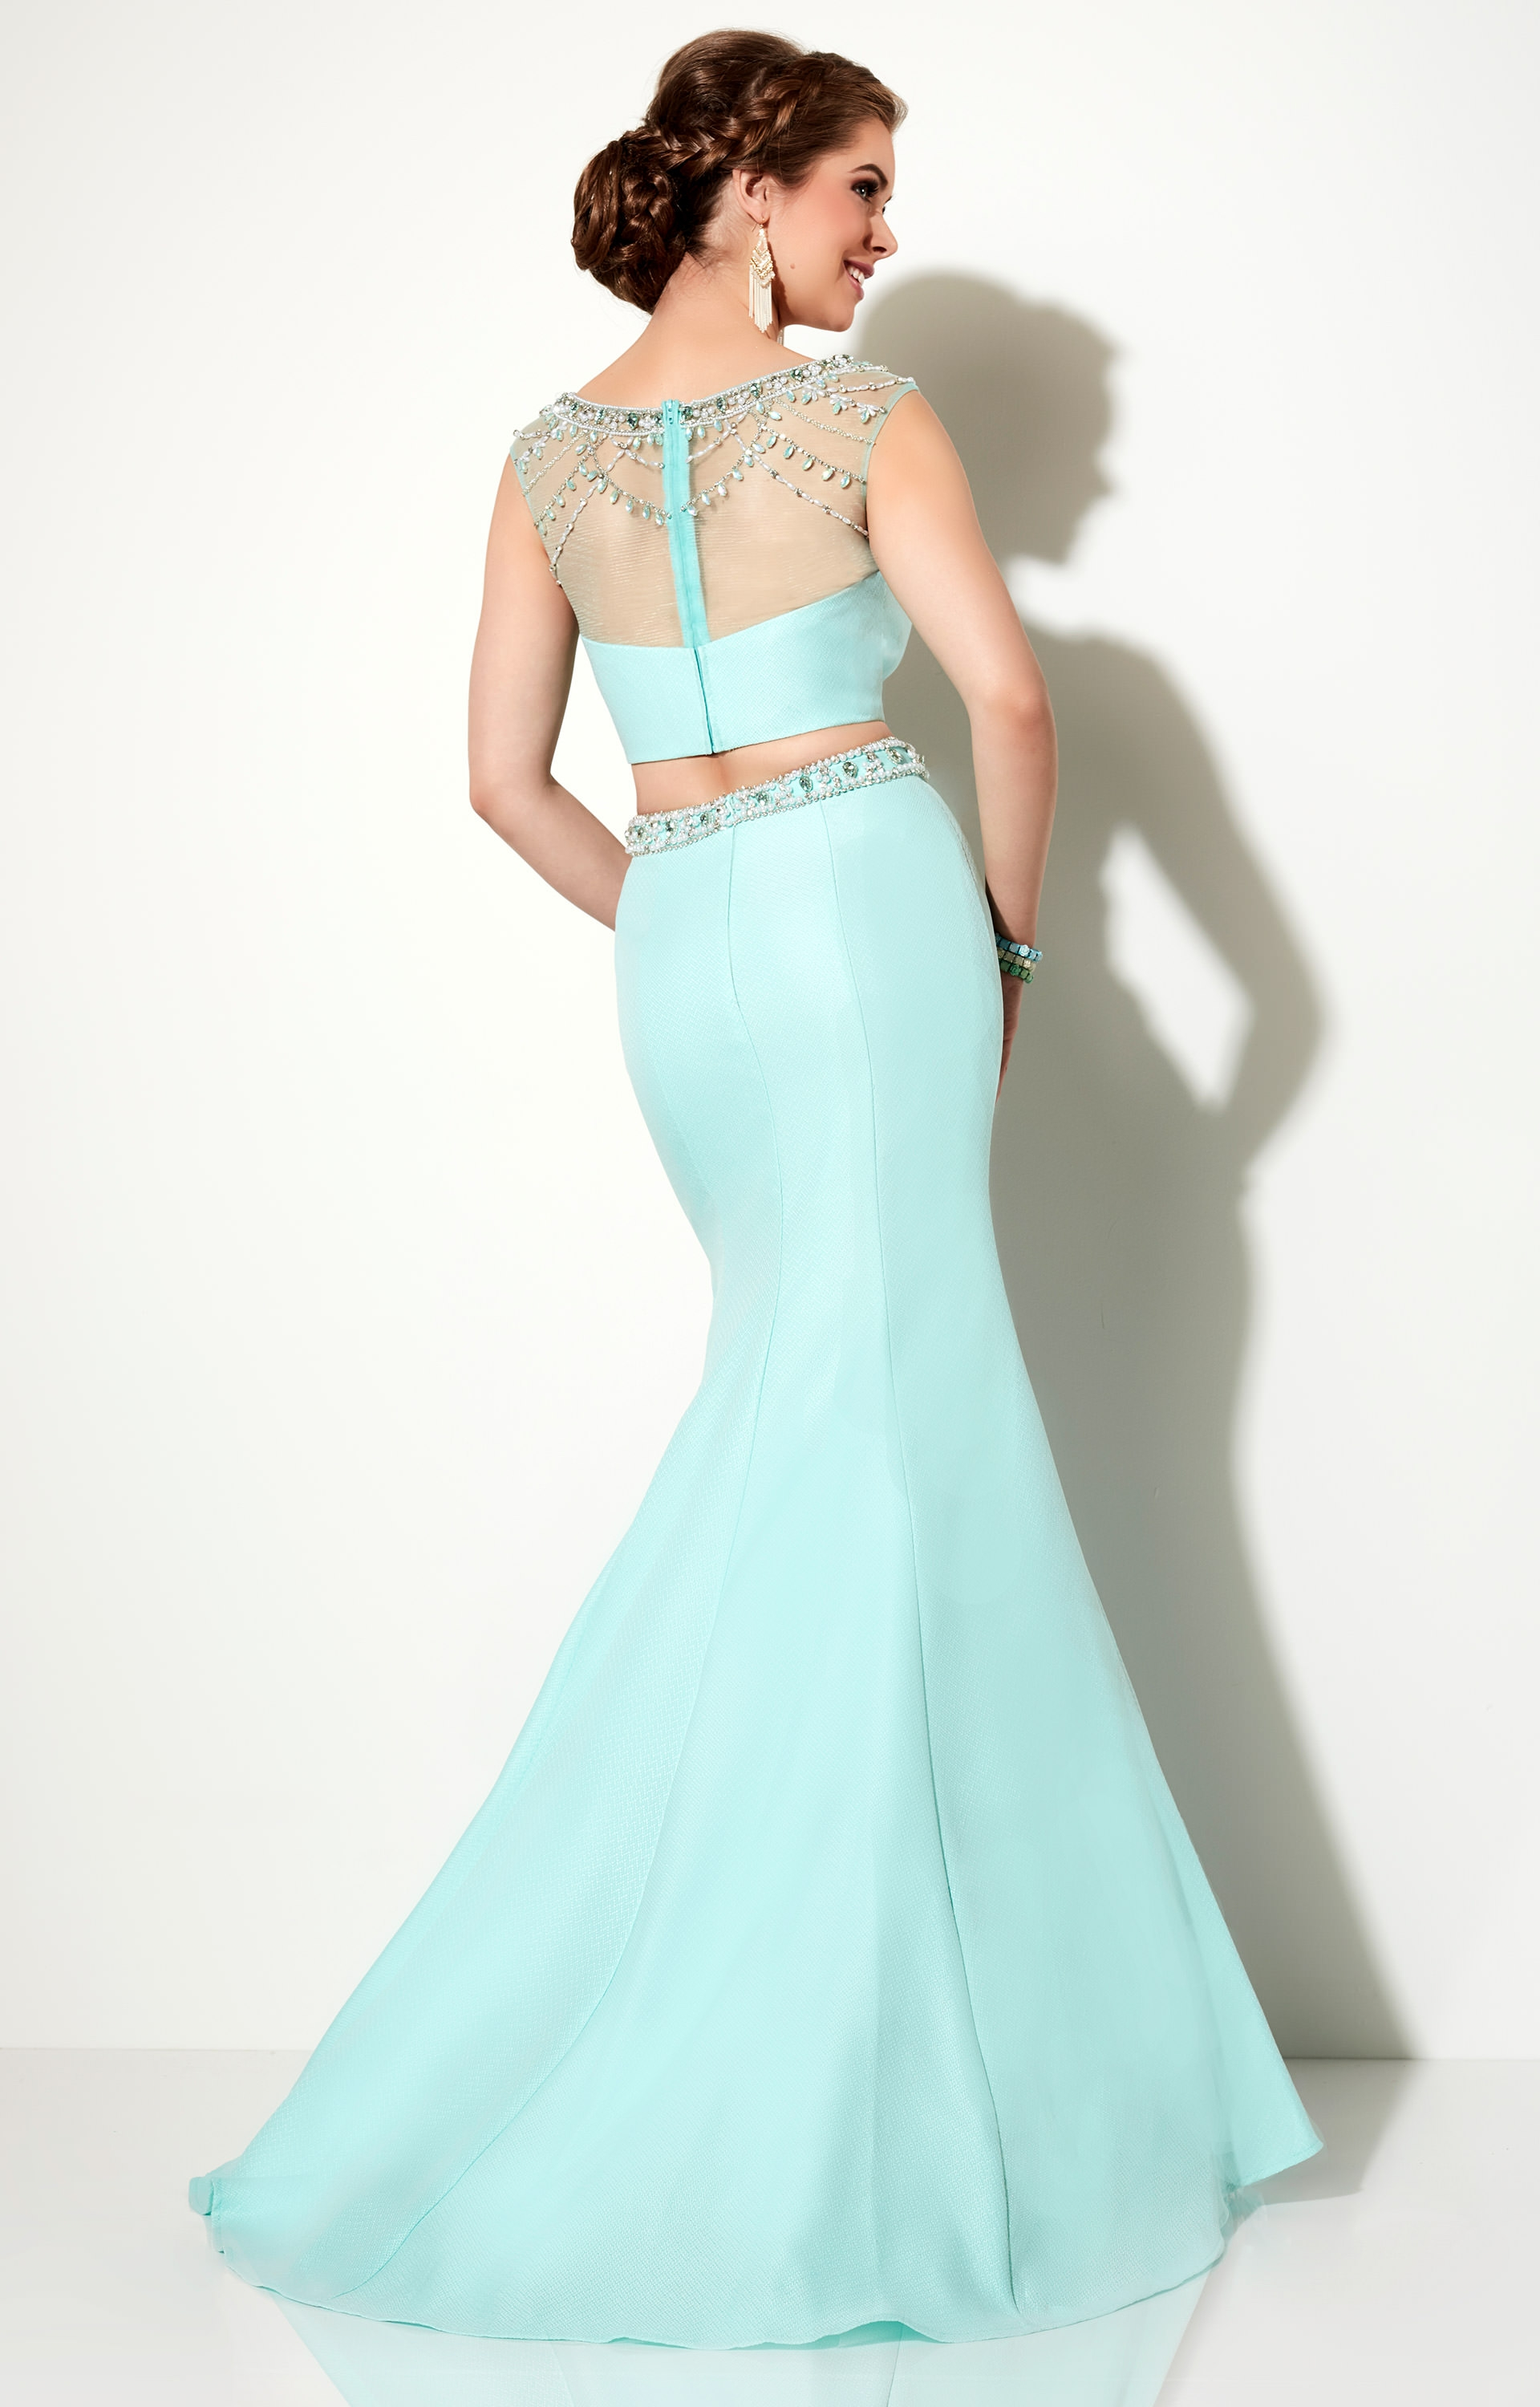 Studio 17 12625 - Beaded Two Piece with Cap Sleeves Prom Dress